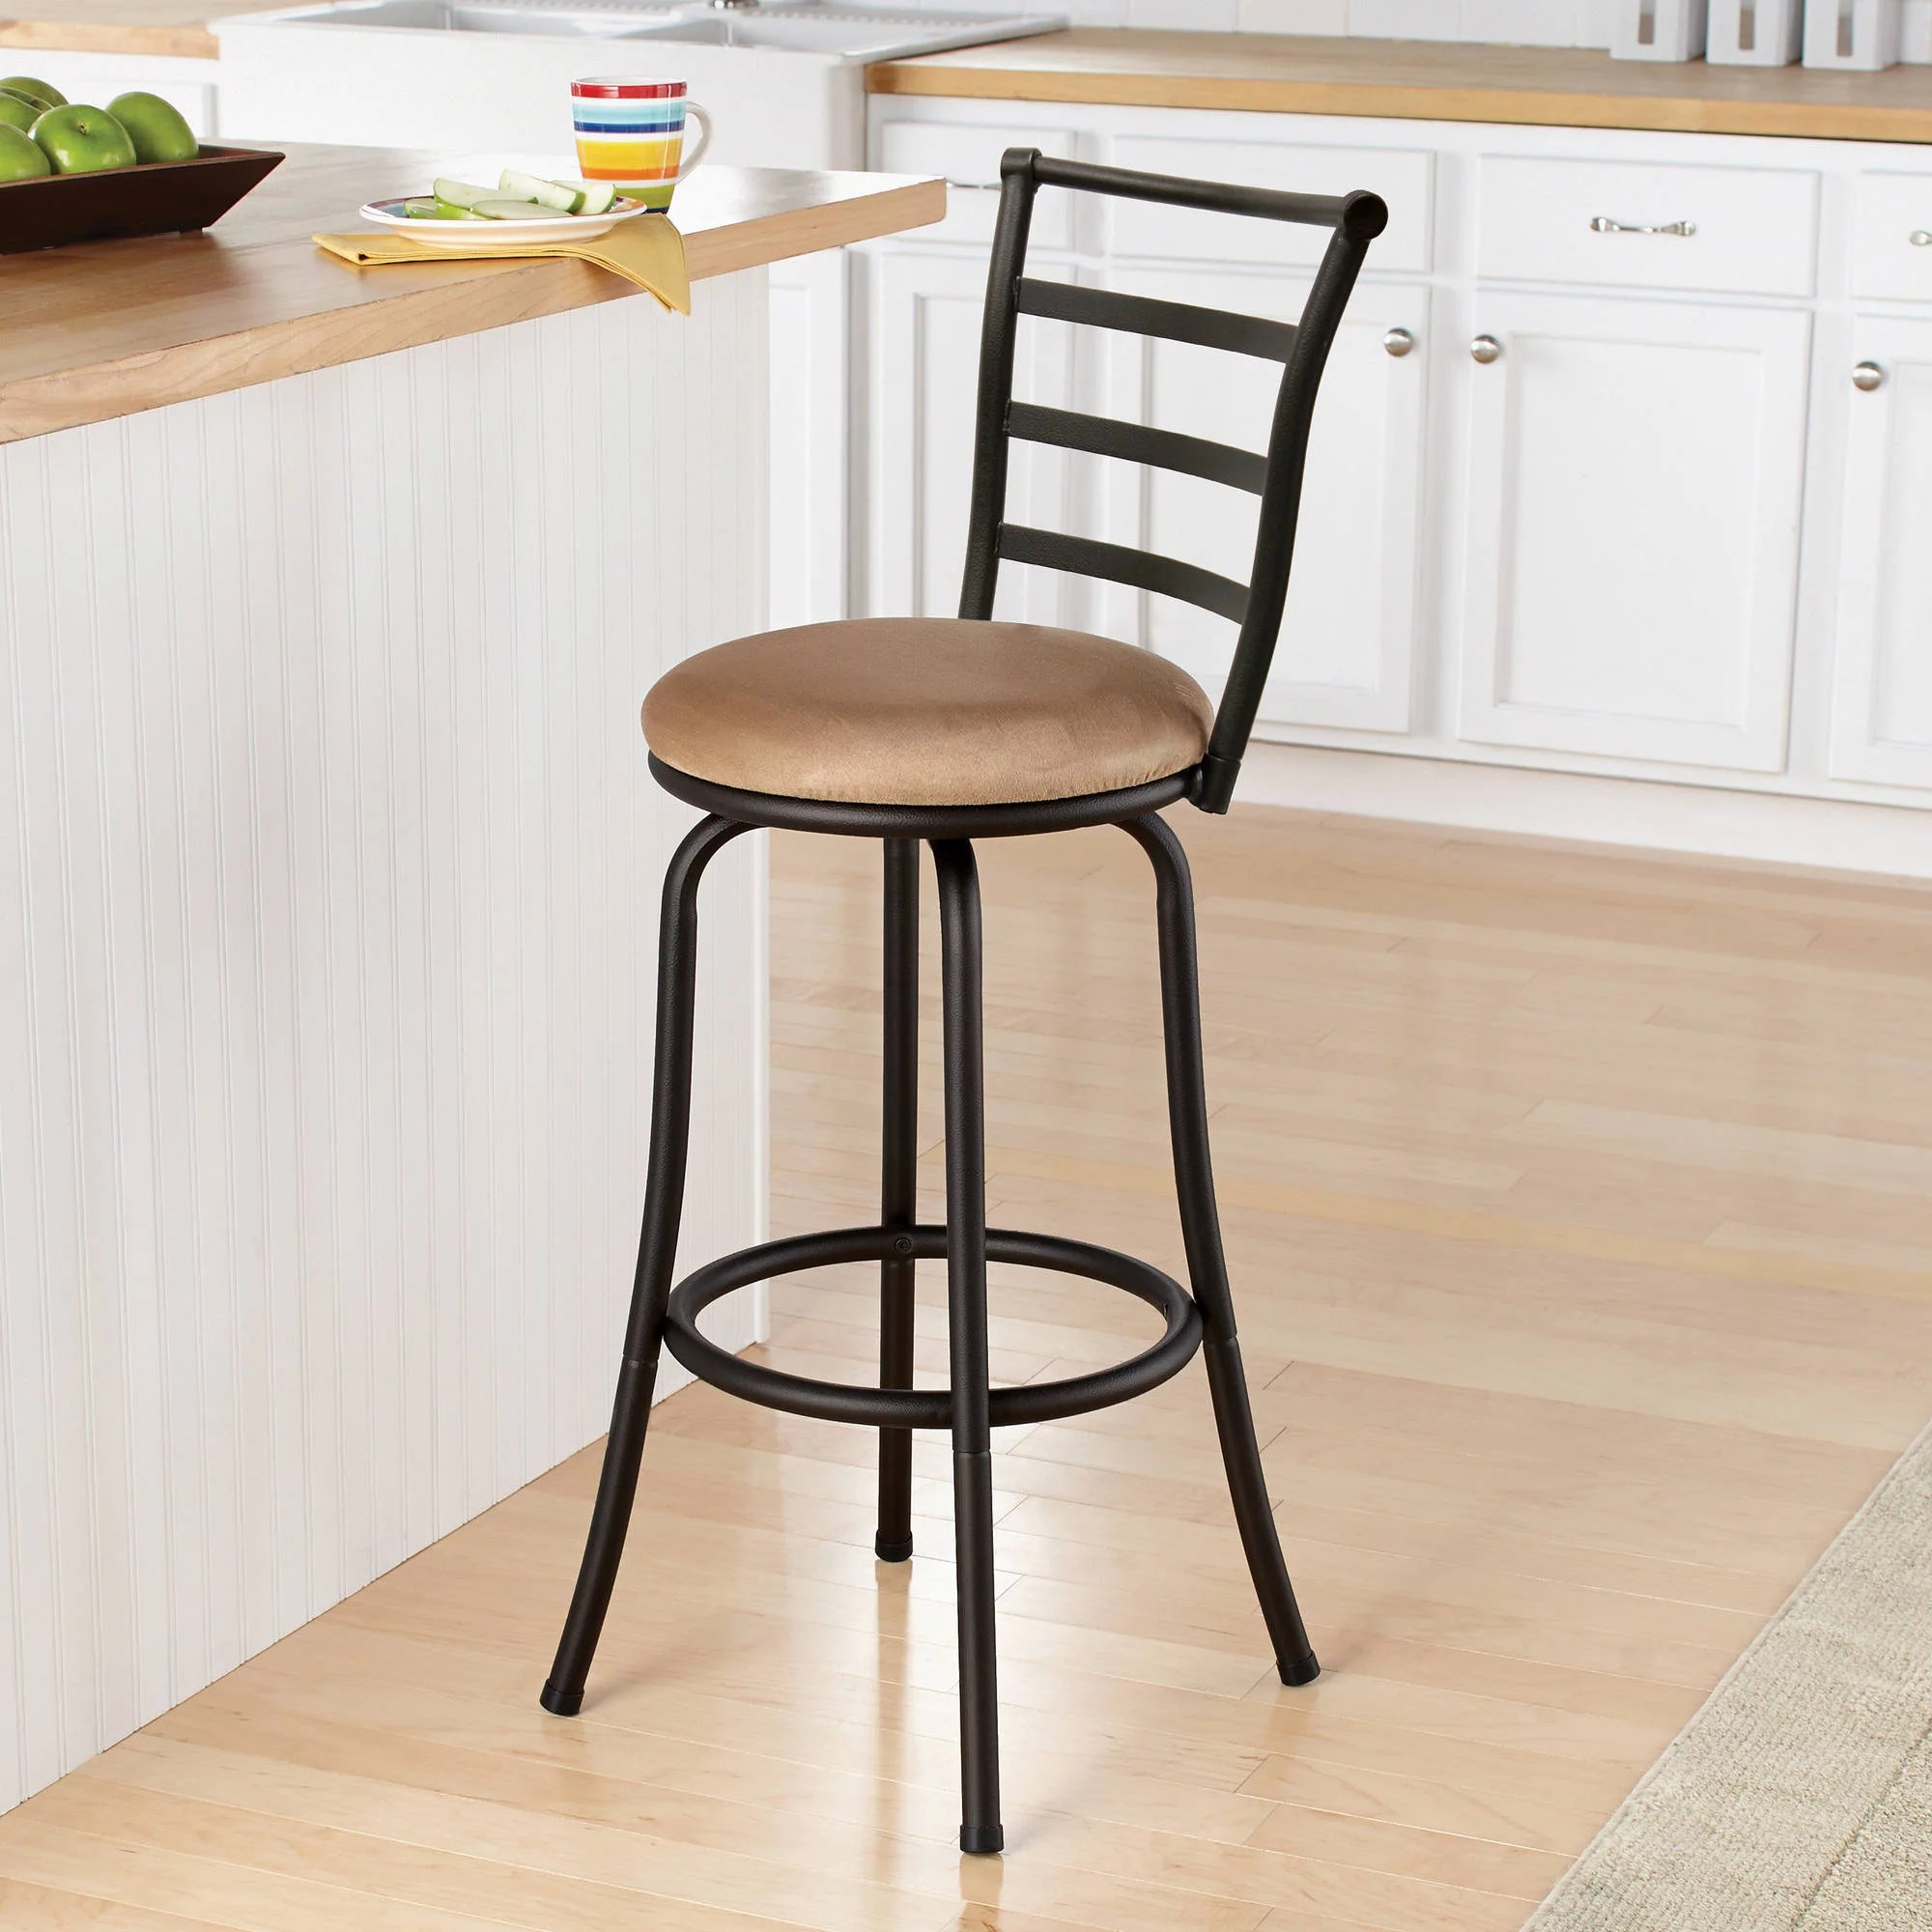 chair stool with back training room chairs singapore mainstays 29 ladder black barstool multiple colors walmart com